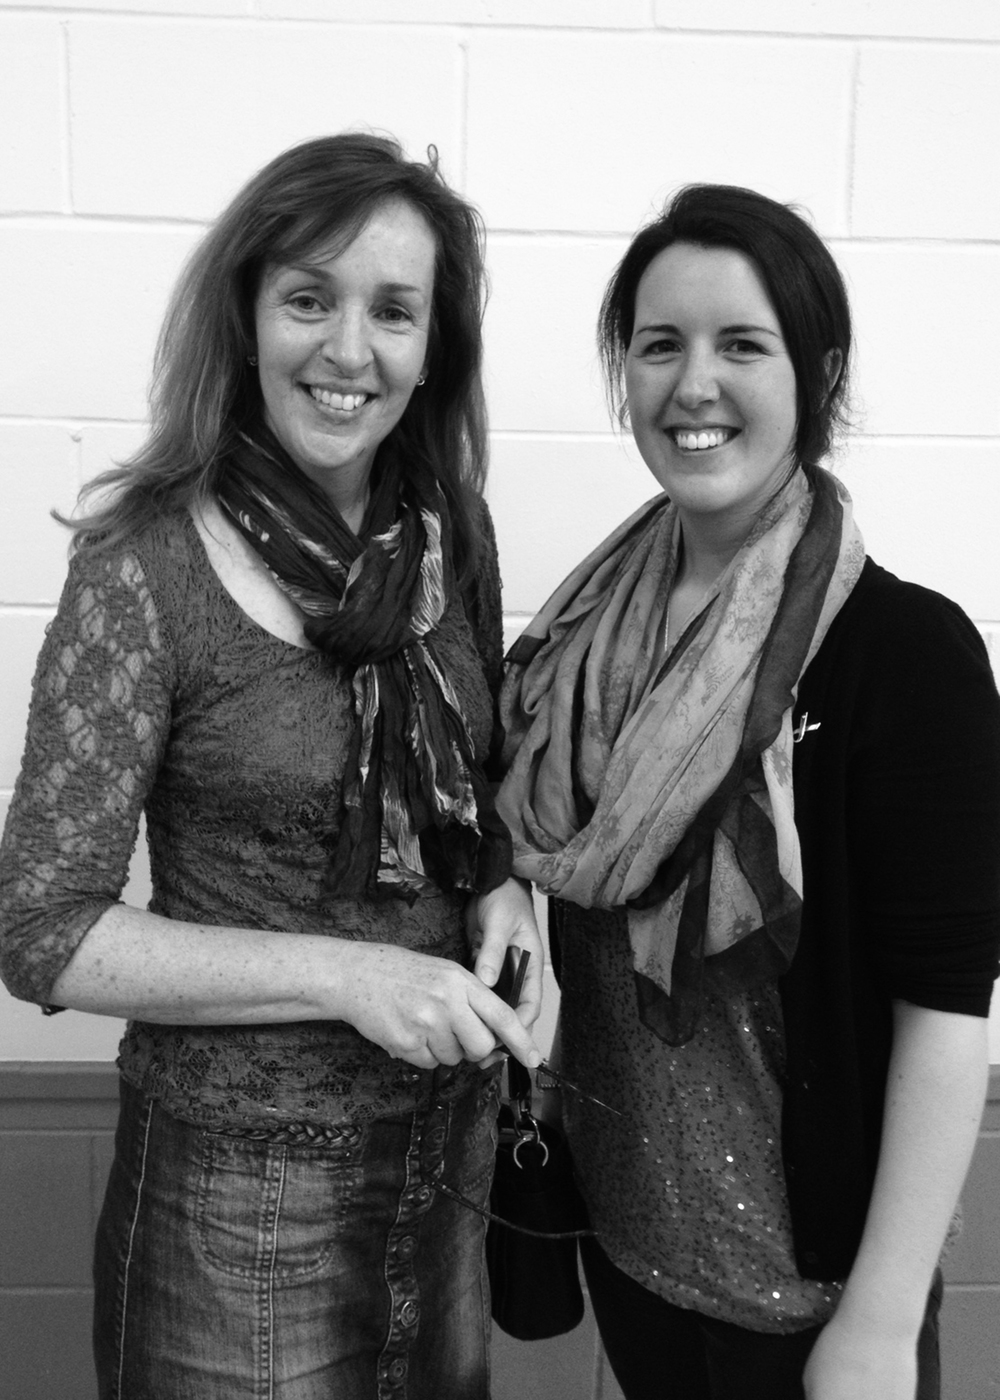 Guest presenter, Emily Hancock (on the right) and I, at her talk on The Business of Equine Photography, held by The Royal Photographic Society Thames Valley Digital Imaging Group, March 2014